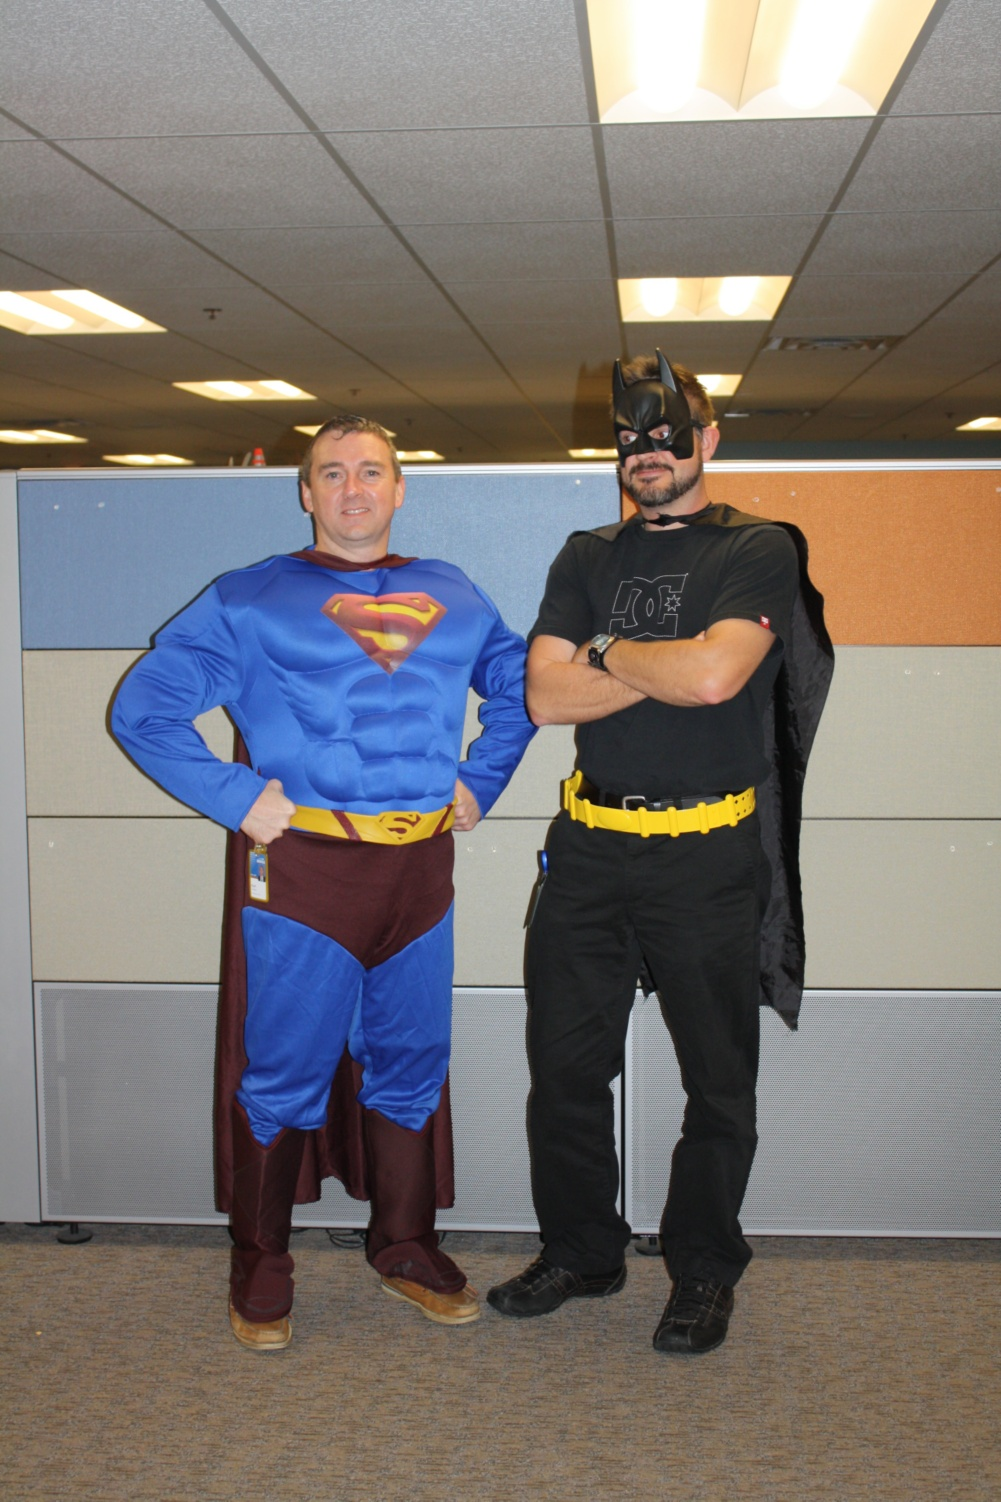 See More Pictures from Customer Service Week on Facebook